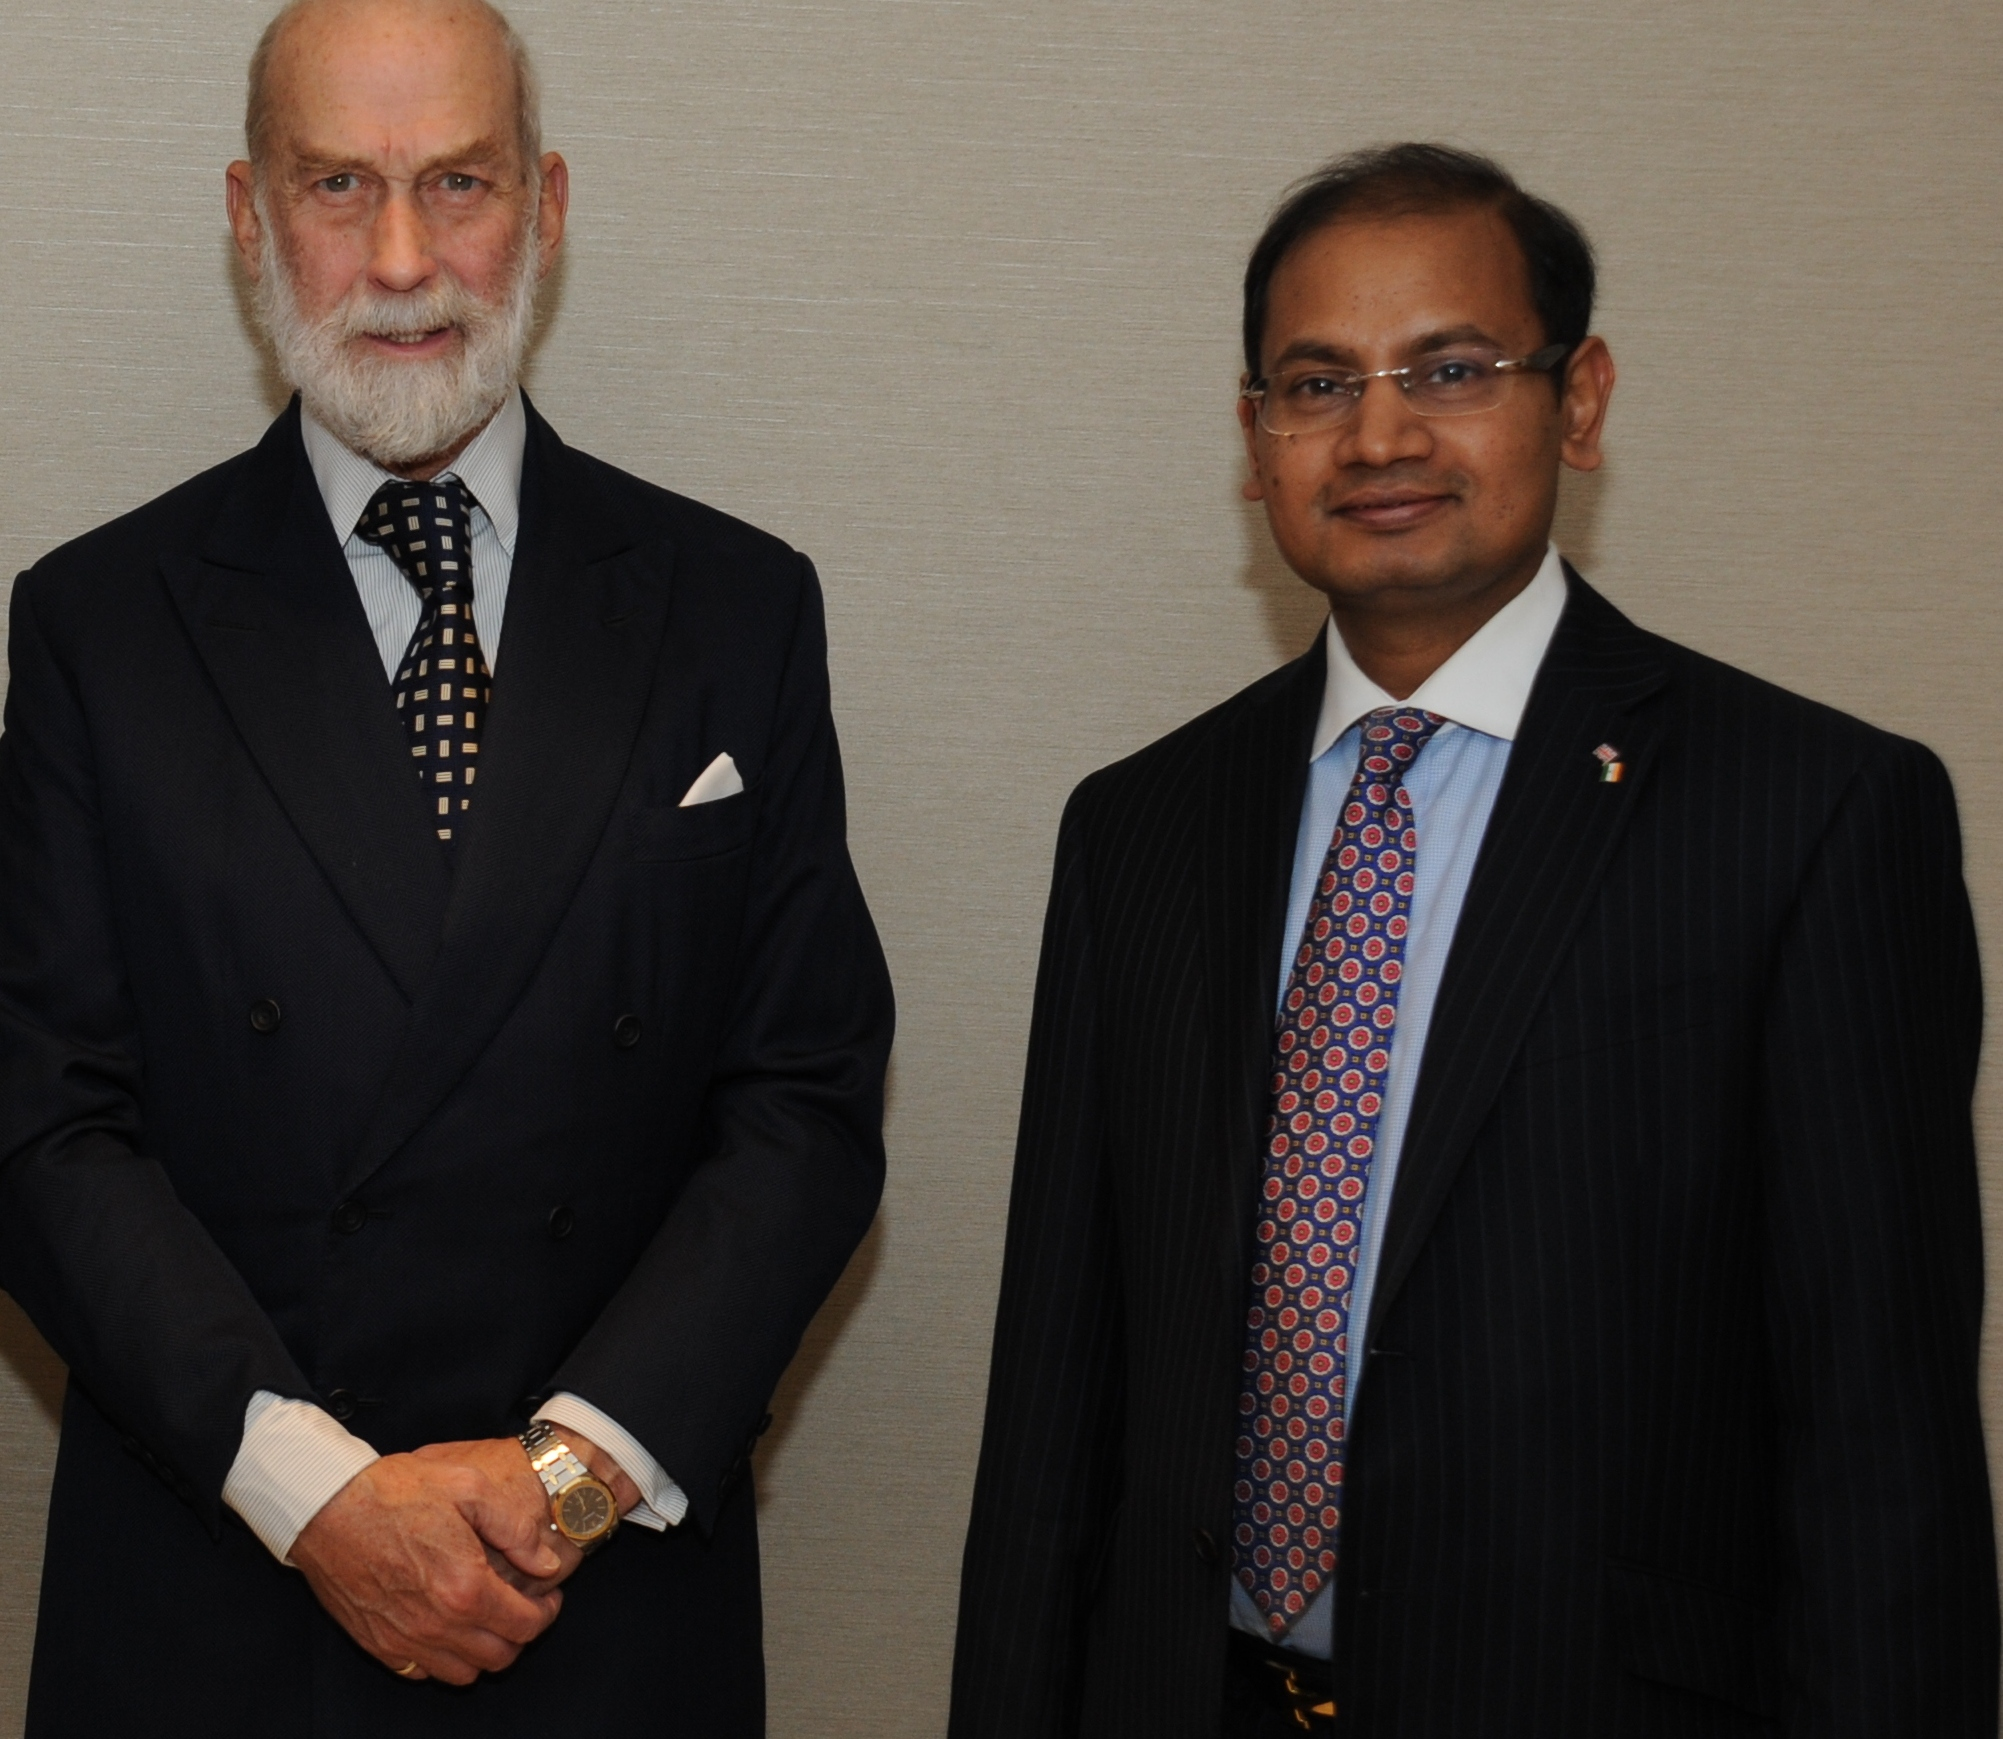 With Prince Michael of Kent